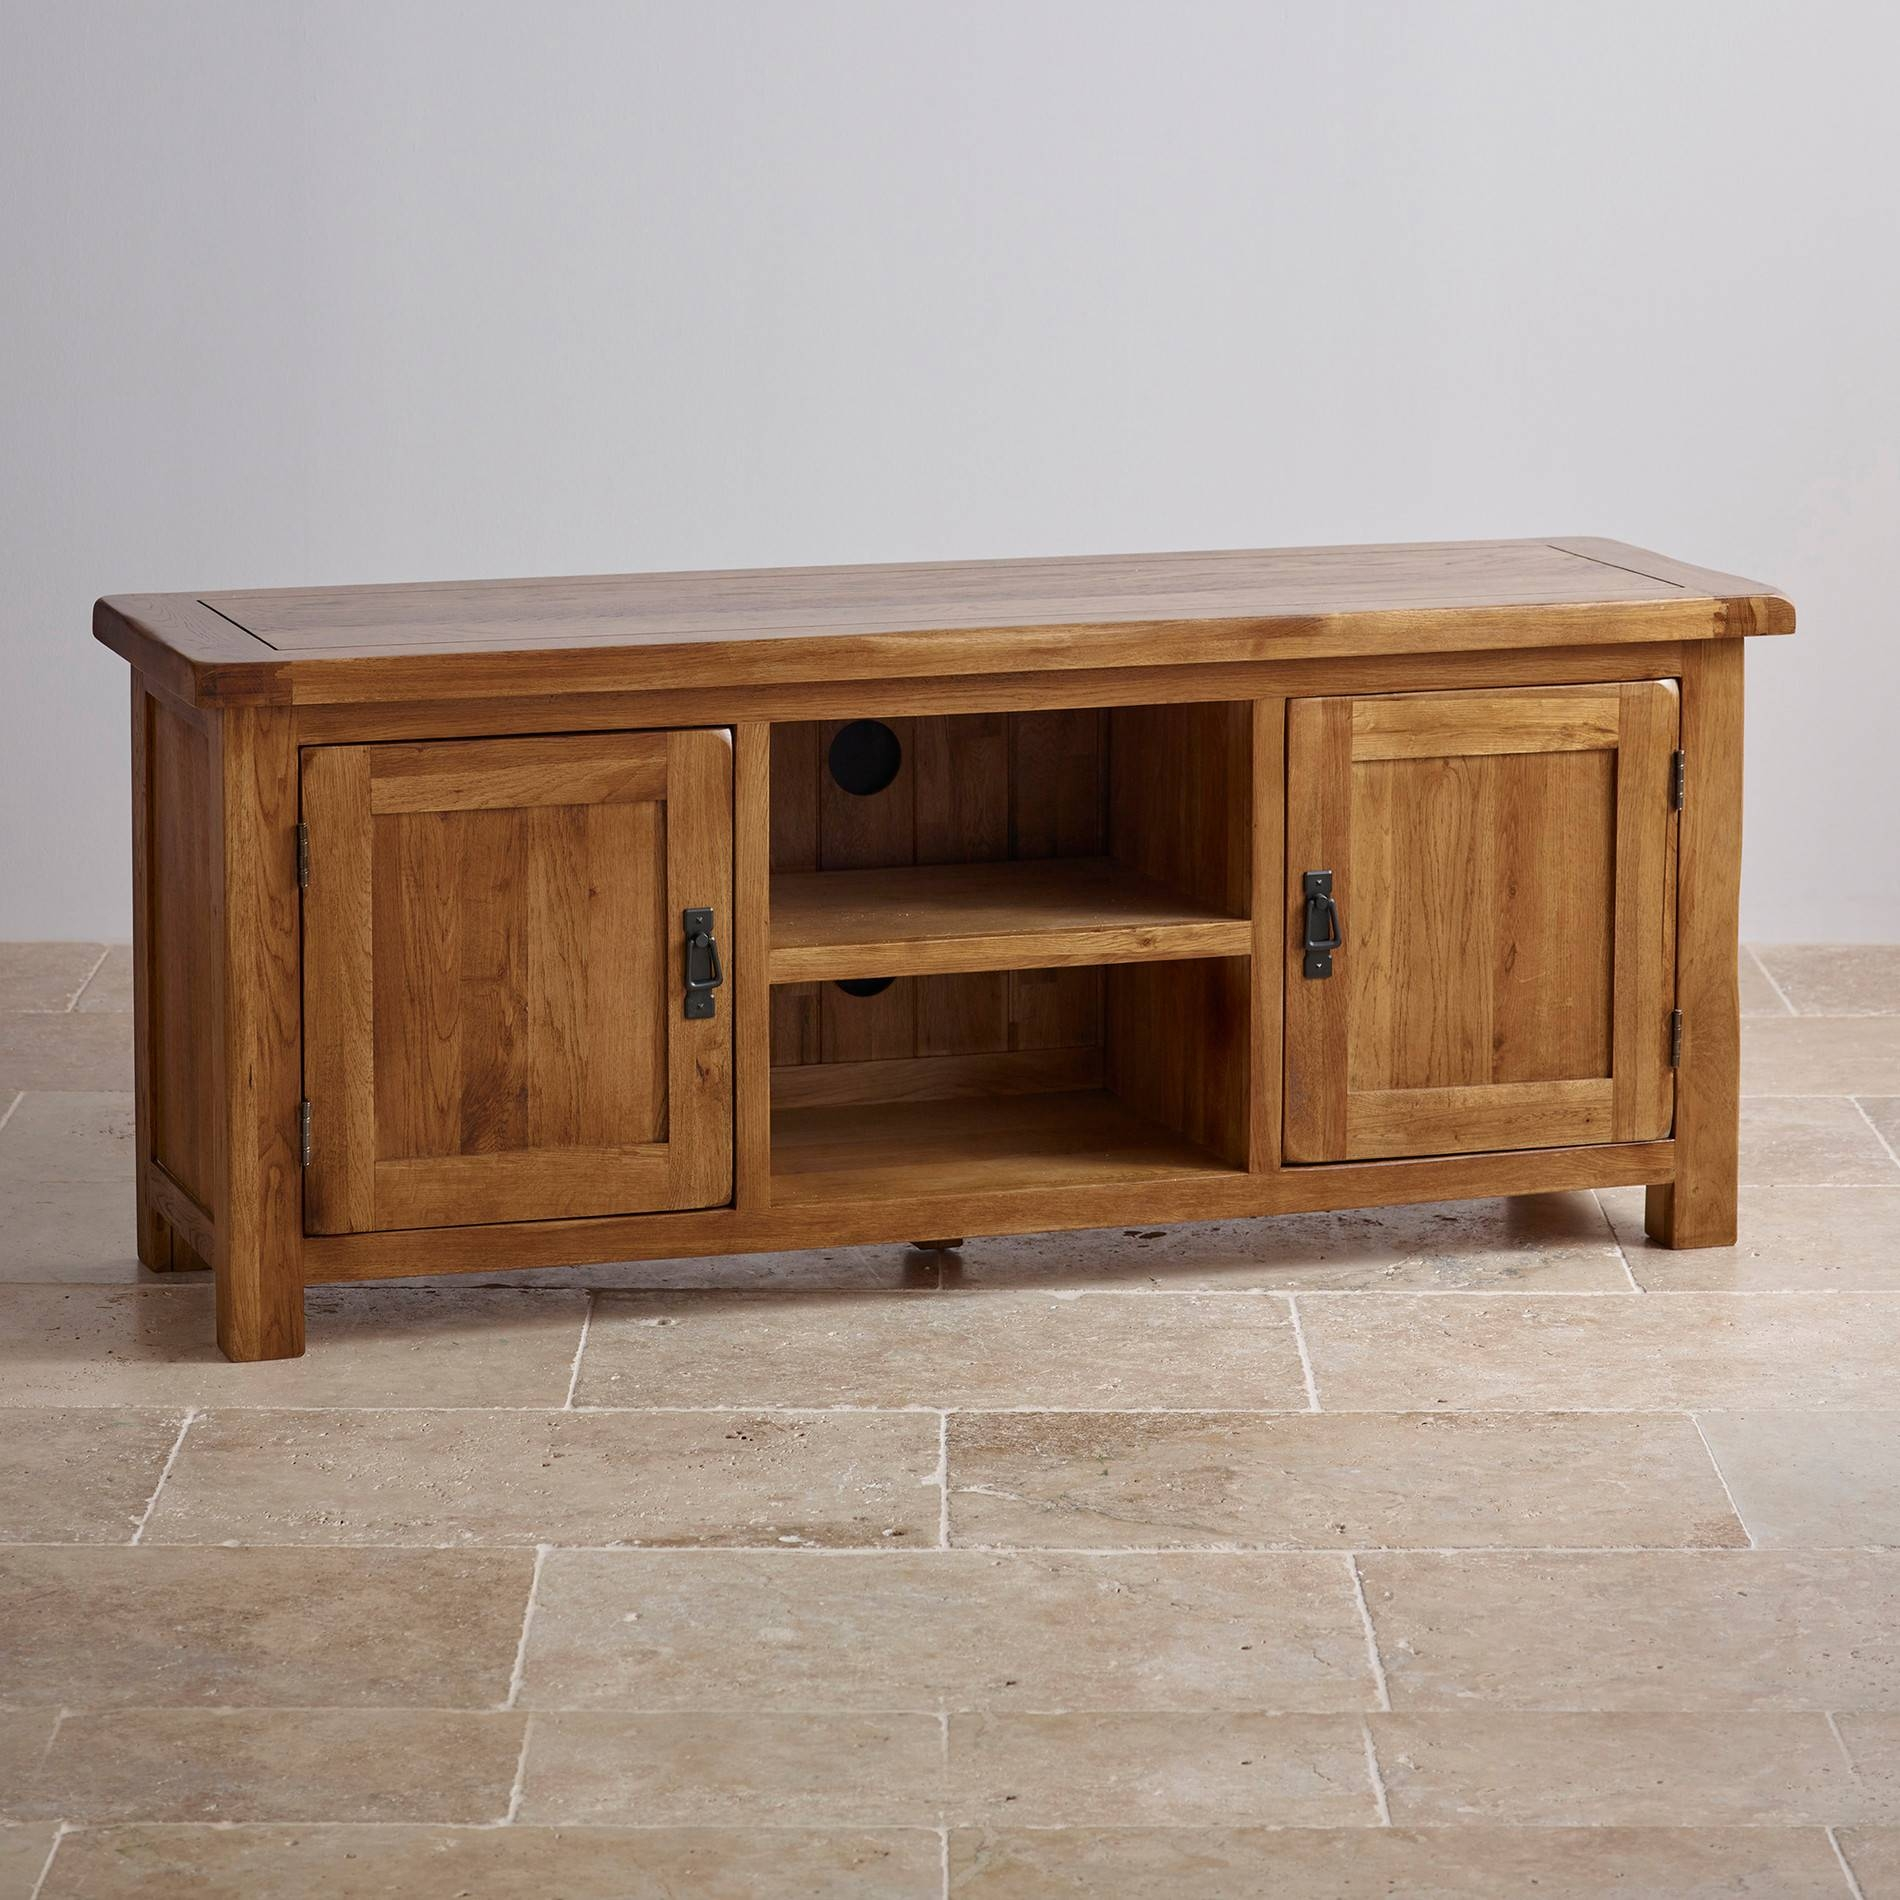 Original Rustic Wide Tv Cabinet In Solid Oak | Oak Furniture Land regarding Widescreen Tv Cabinets (Image 10 of 15)